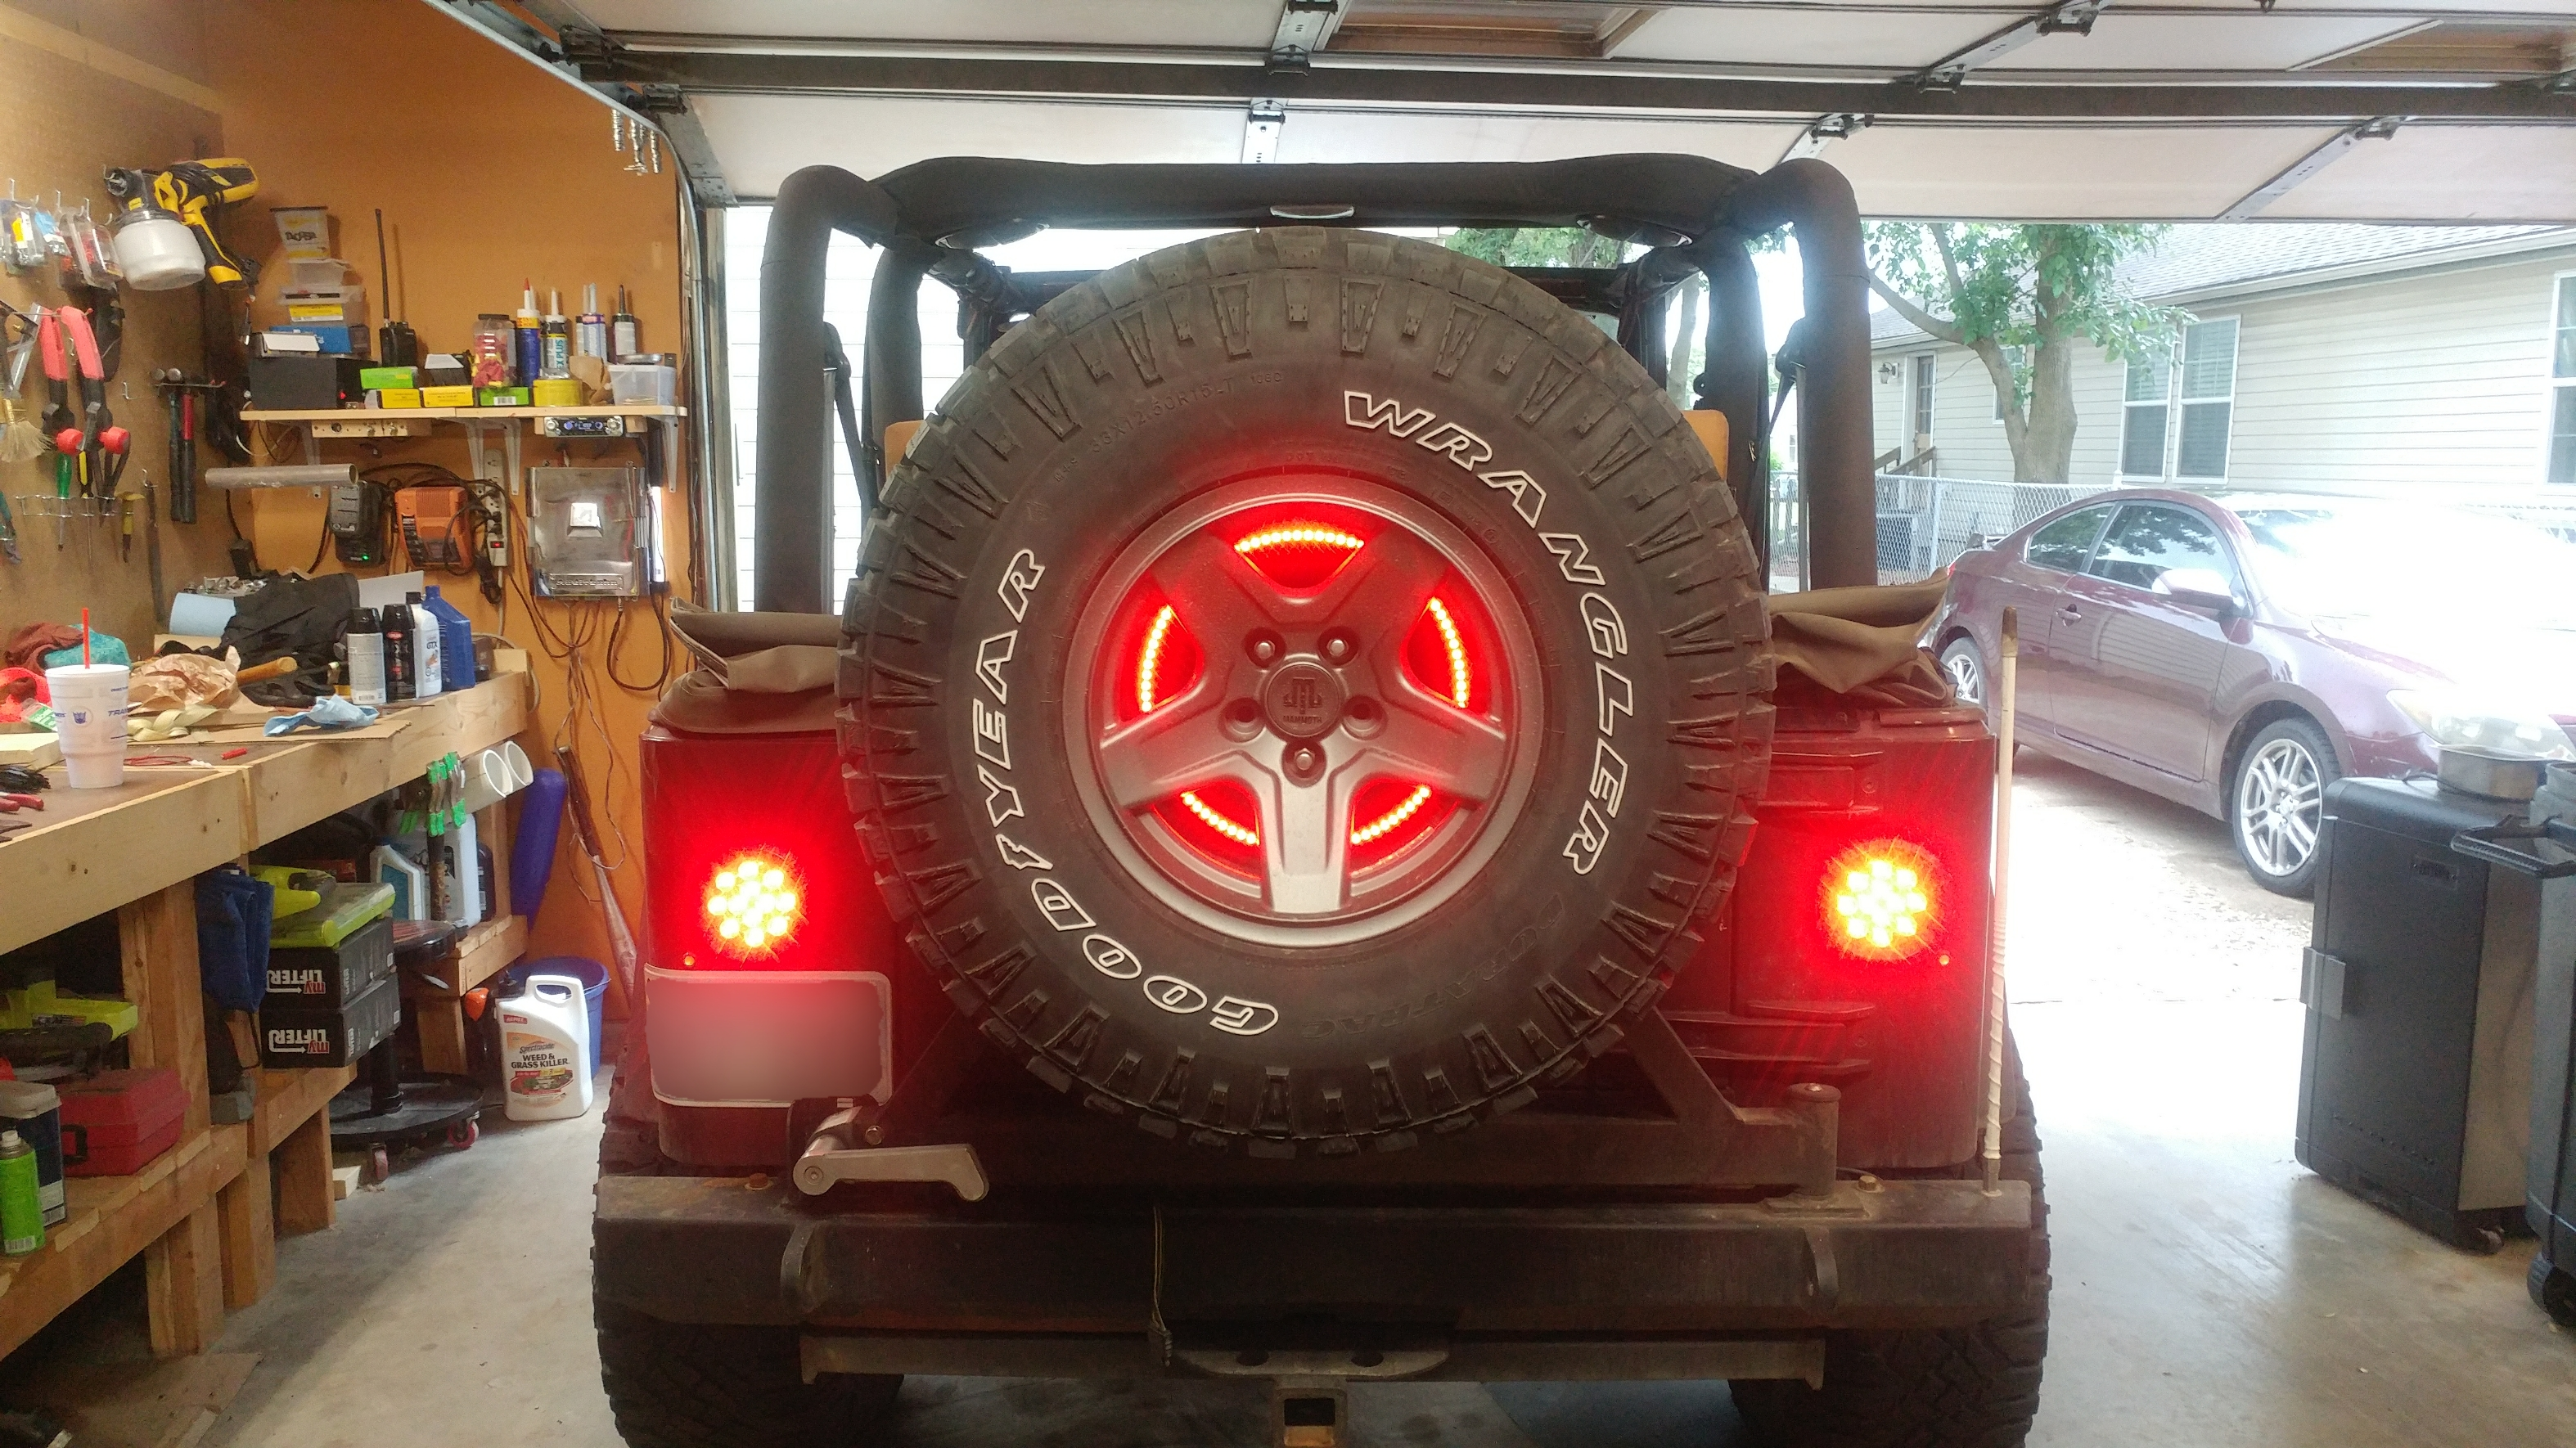 My 20 3rd brake light led ring jeep wrangler forum 1 side emitting led strip red 2 home depot 5 gallon bucket lid 3 clear silicone aloadofball Gallery